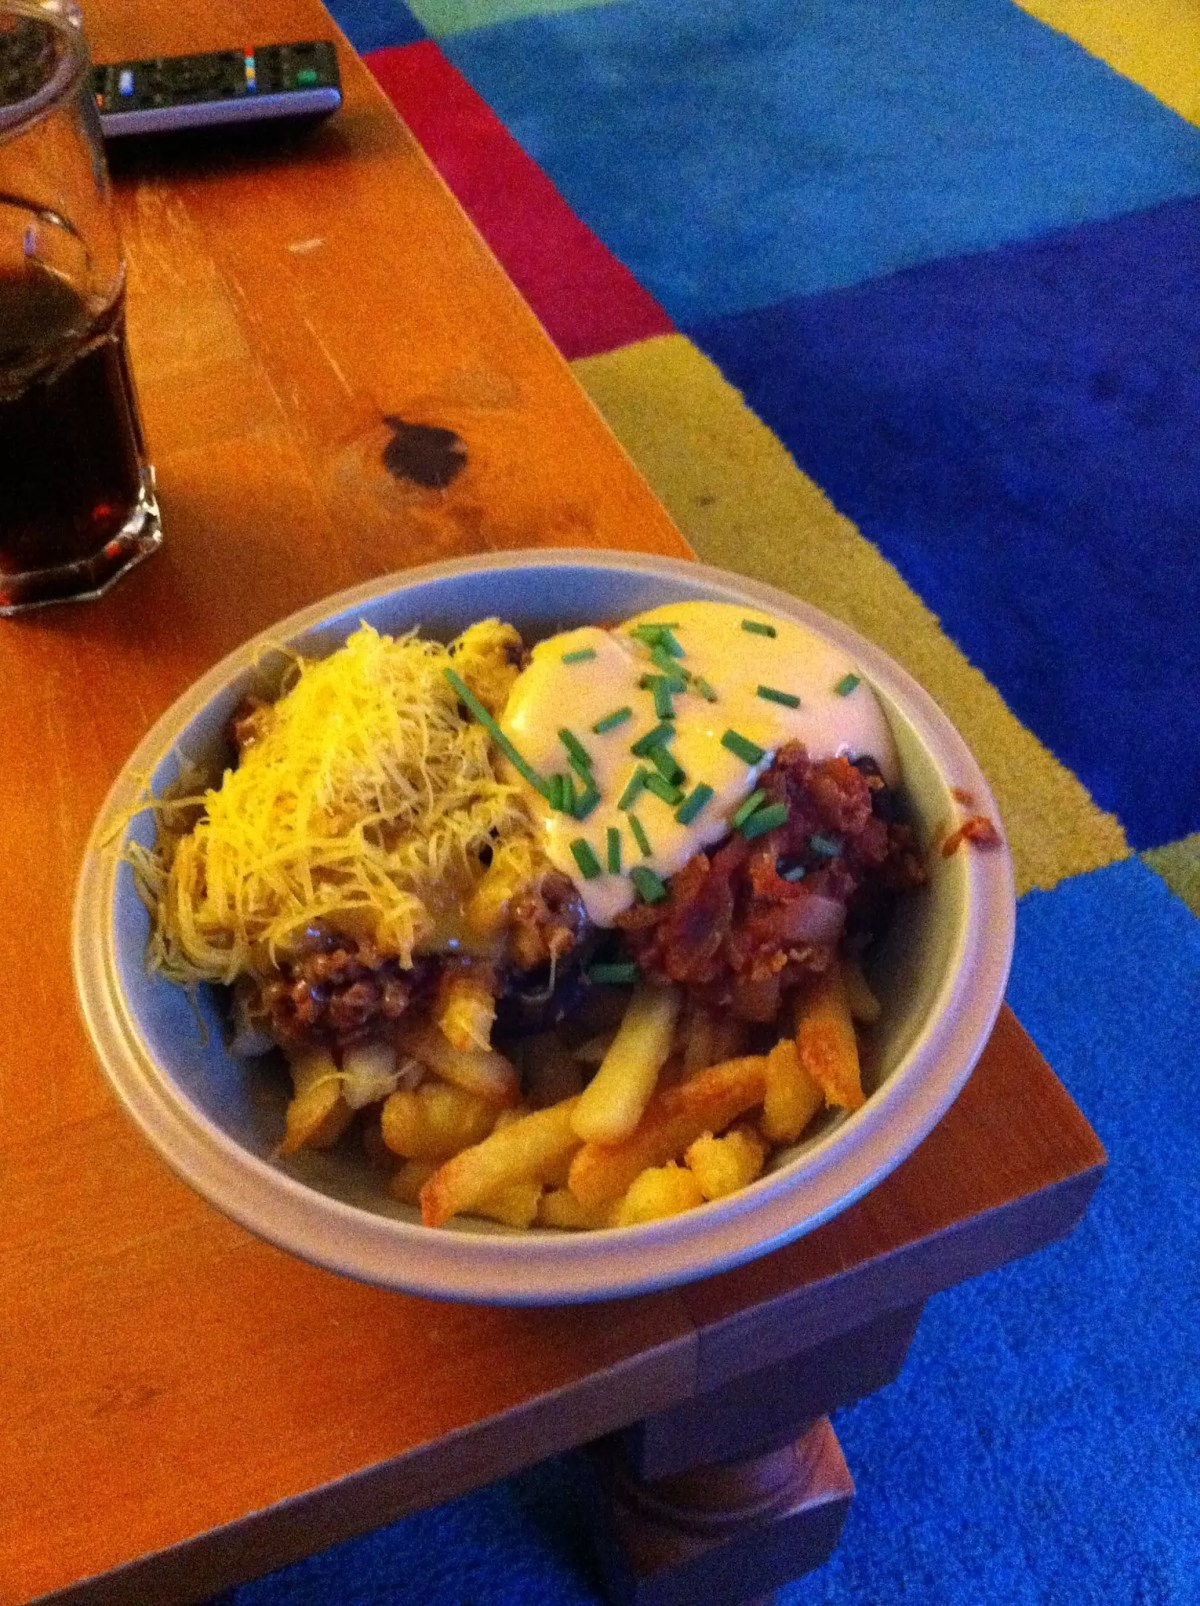 Taco Fries - photo by Seamus Walsh under CC BY 2.0